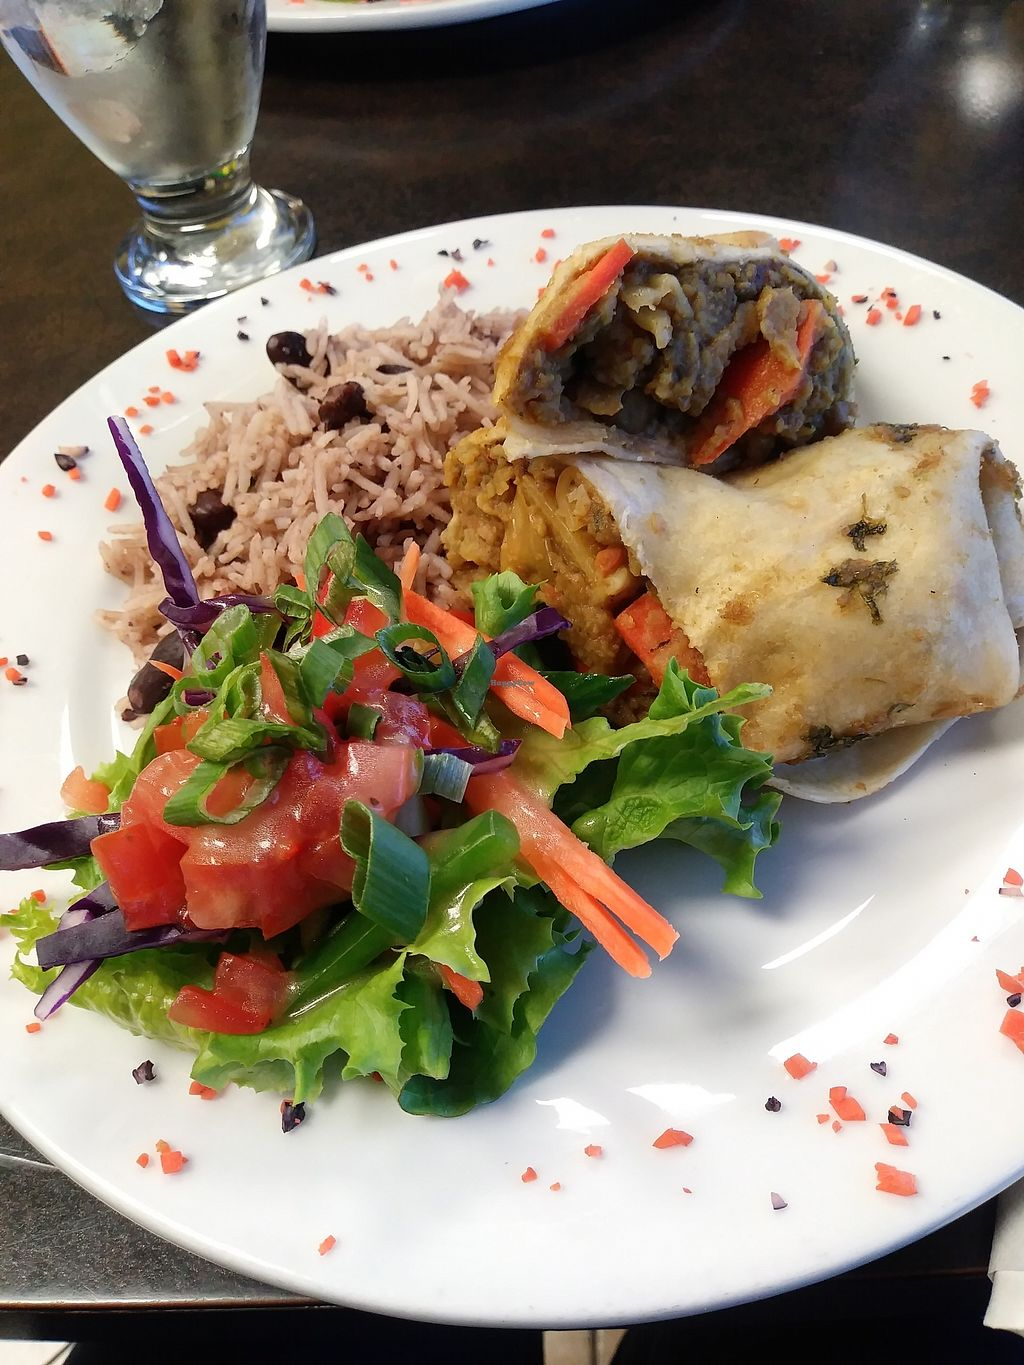 """Photo of Jamaican Kitchen  by <a href=""""/members/profile/LolaMeow"""">LolaMeow</a> <br/>Vegetarian Roti <br/> February 17, 2018  - <a href='/contact/abuse/image/112178/360190'>Report</a>"""